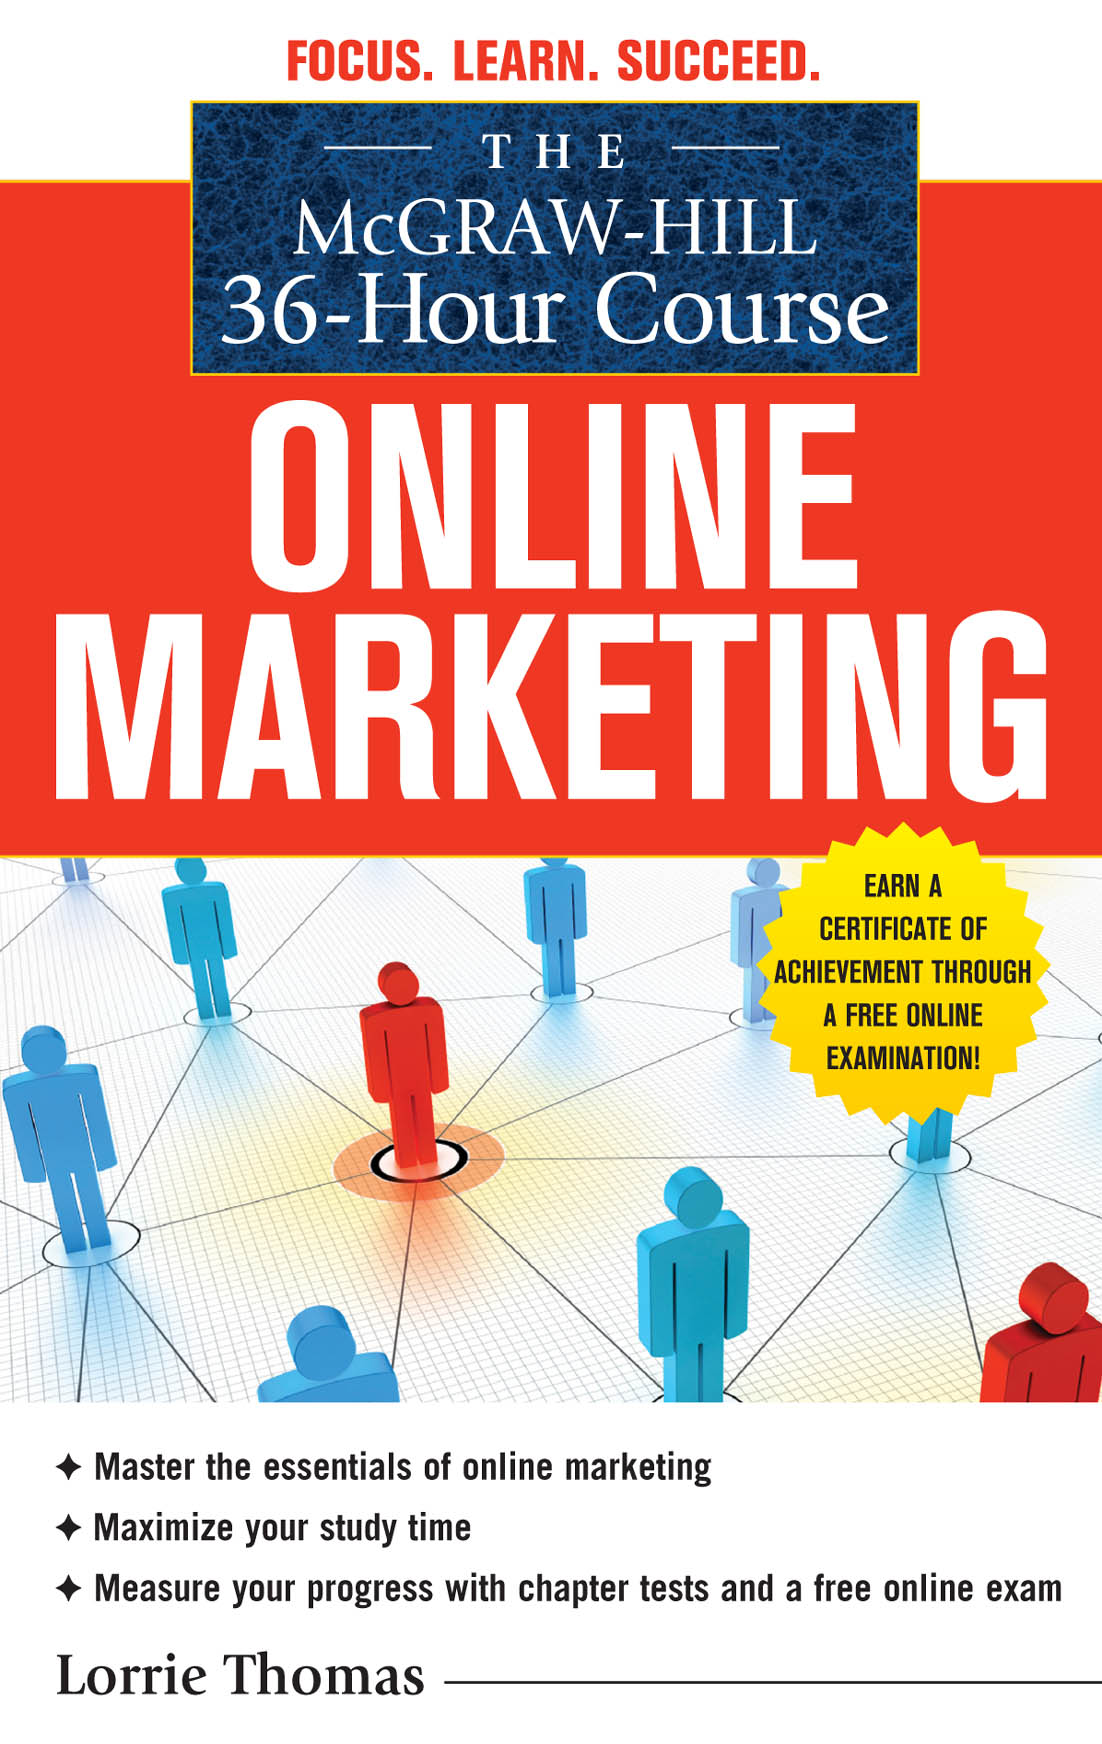 Download Ebook The McGraw-Hill 36-Hour Course: Online Marketing by Lorrie Thomas Pdf